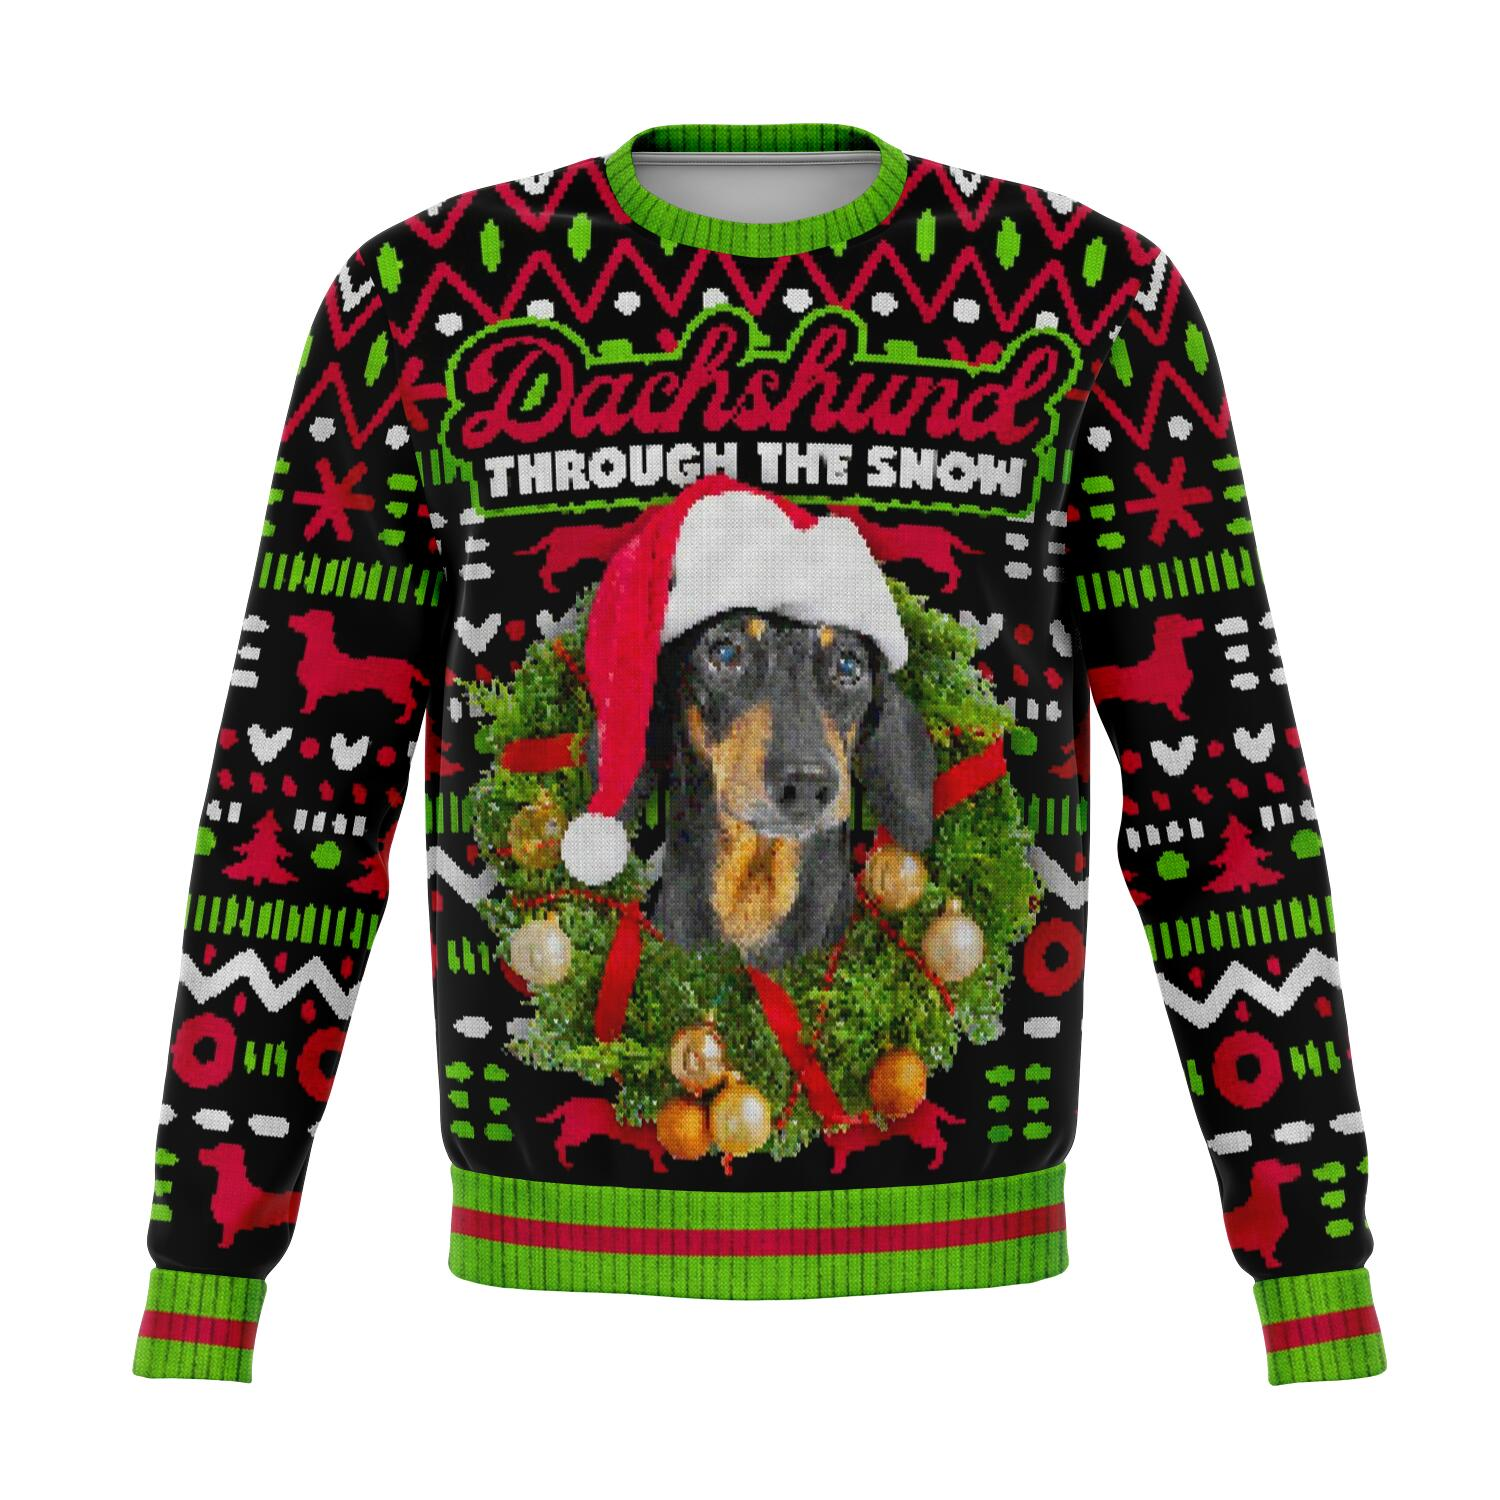 Dachshund Through The Snow Christmas Sweatshirt - XS - S - M - L - XL - 2XL - 3XL - 4XL